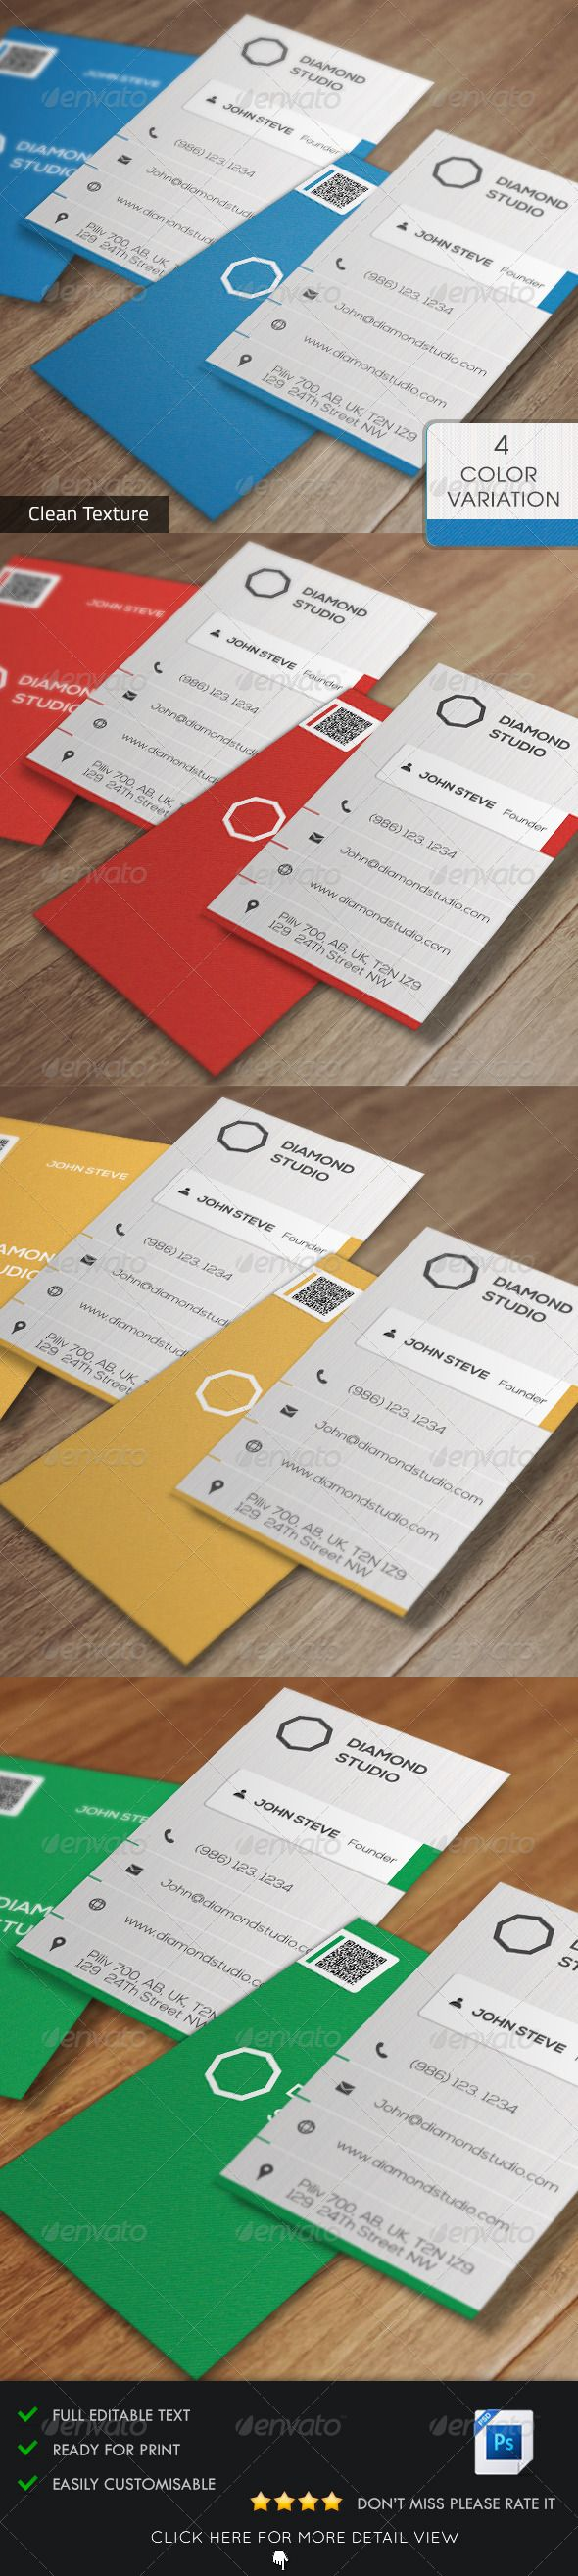 Business card printing free templates from nextdayflyers - Corporate Business Card V6